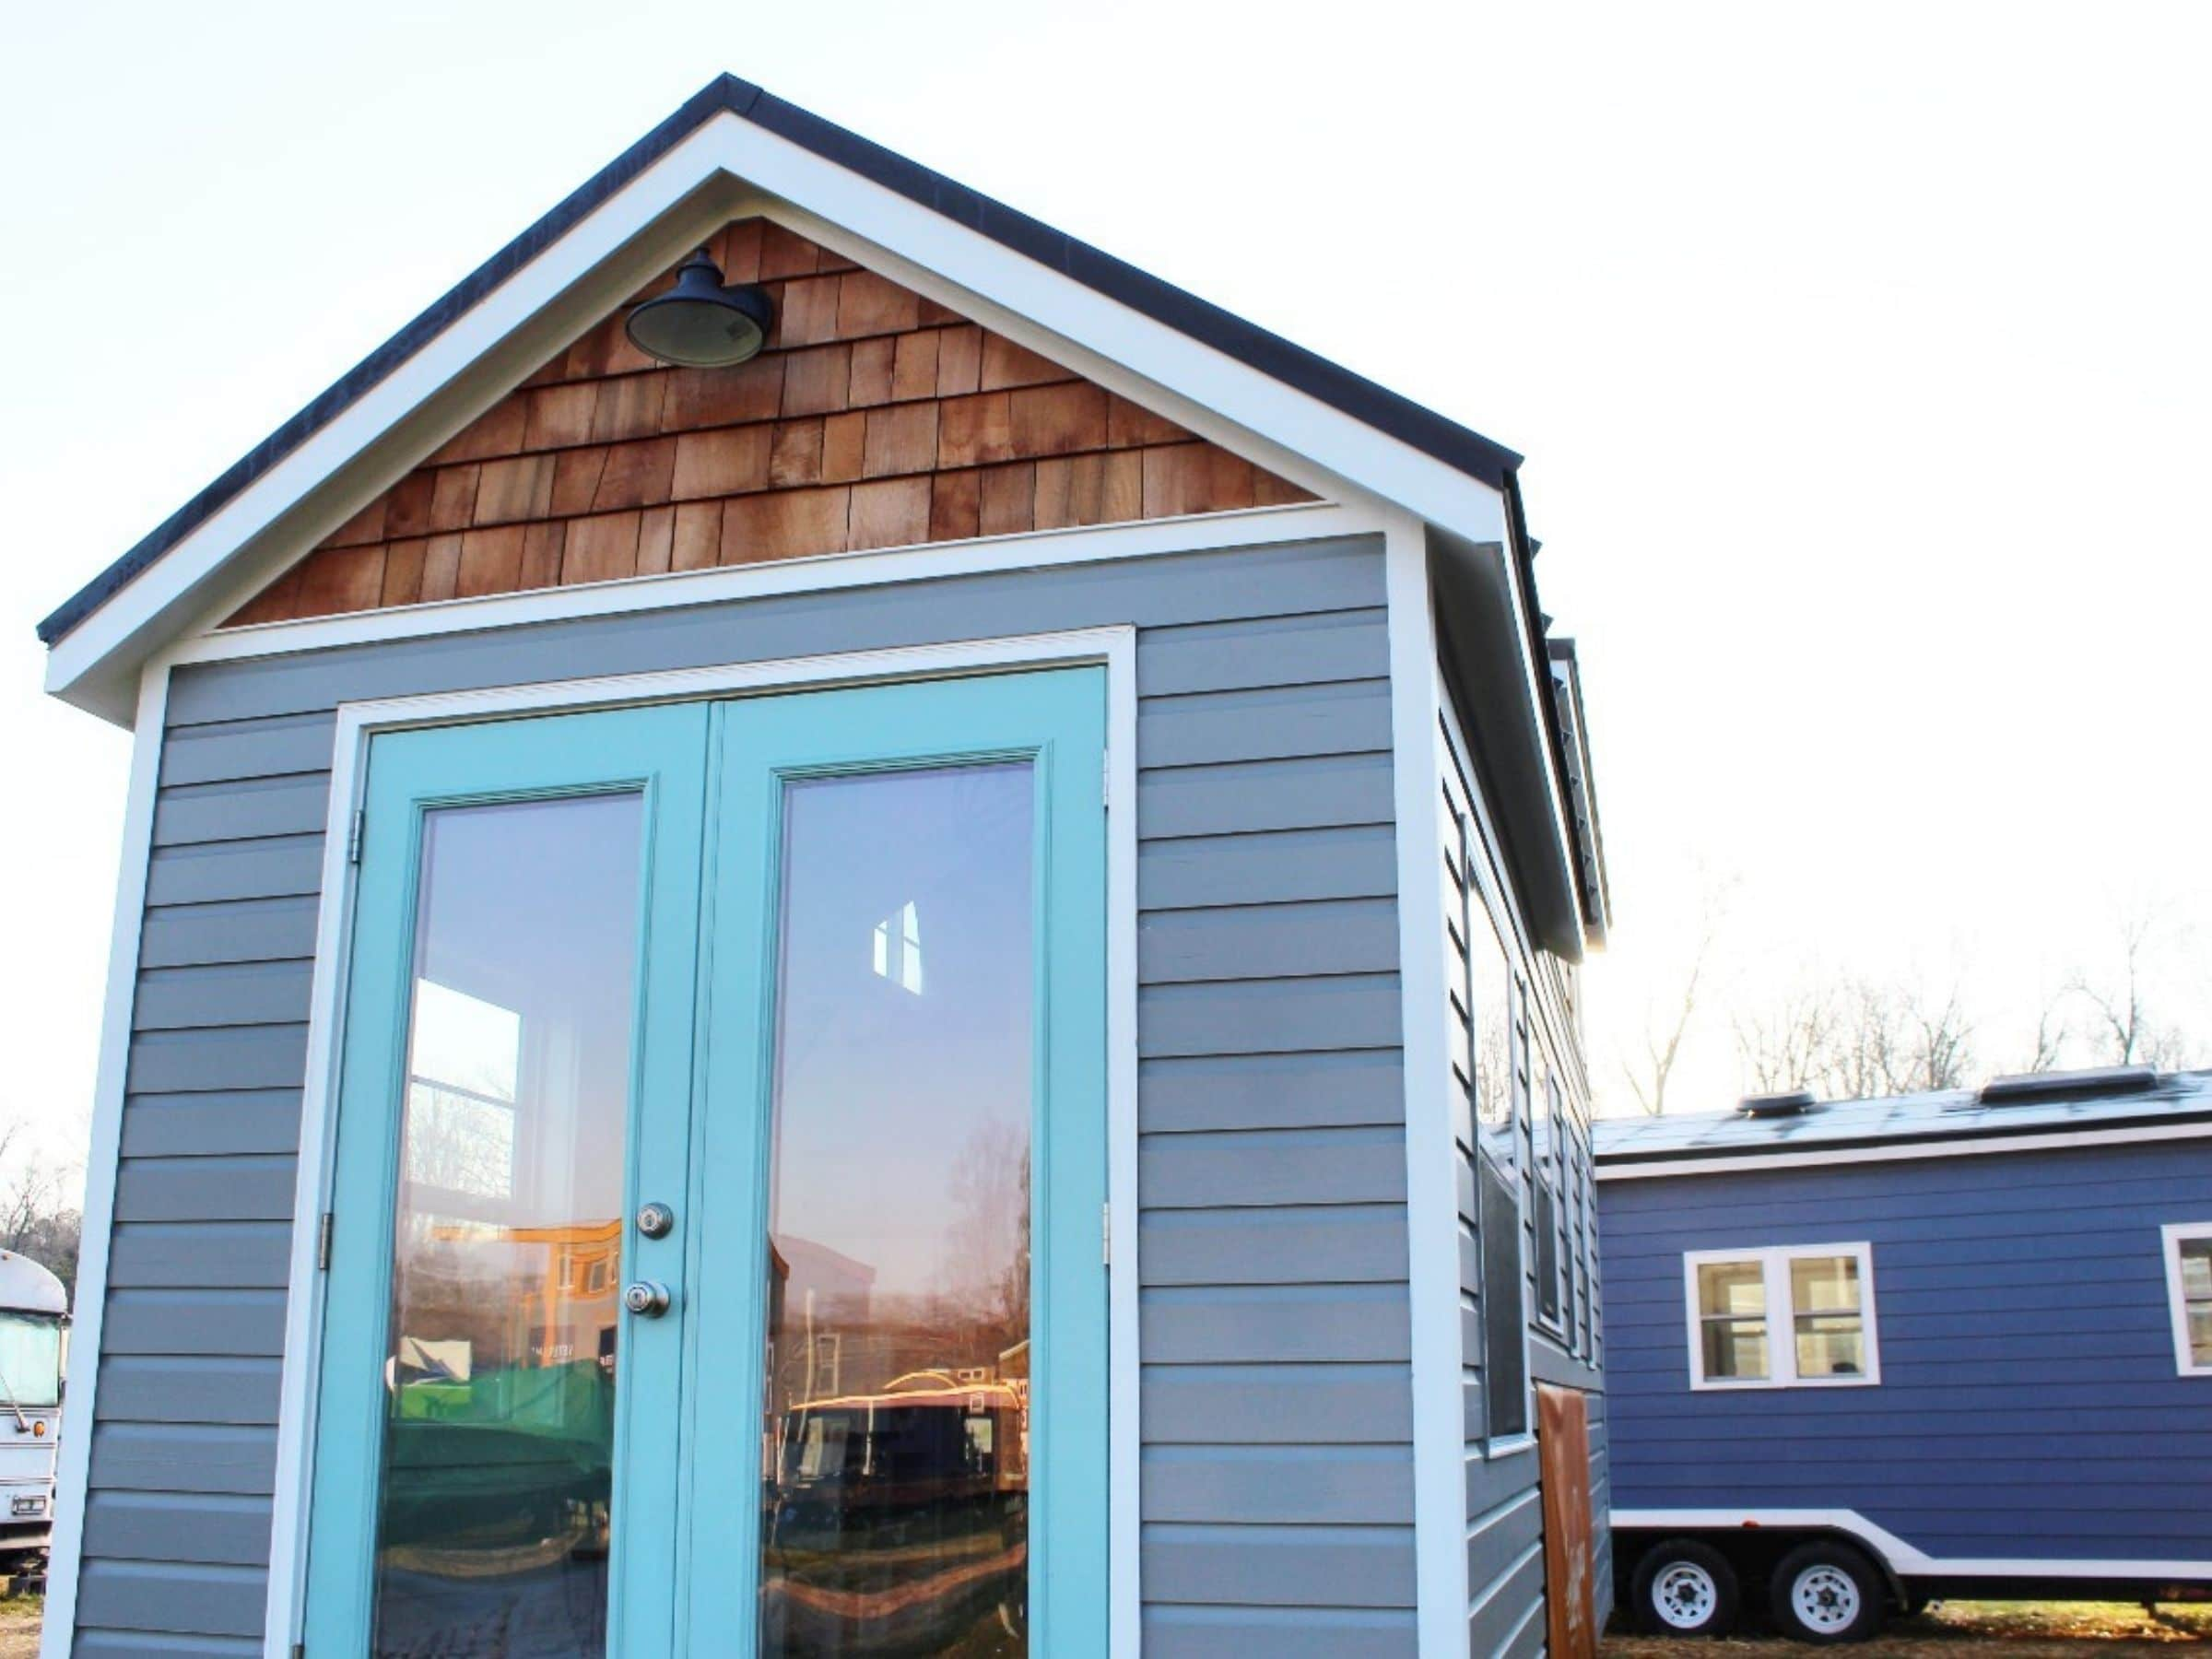 Teal front doors on gray tiny home on wheels